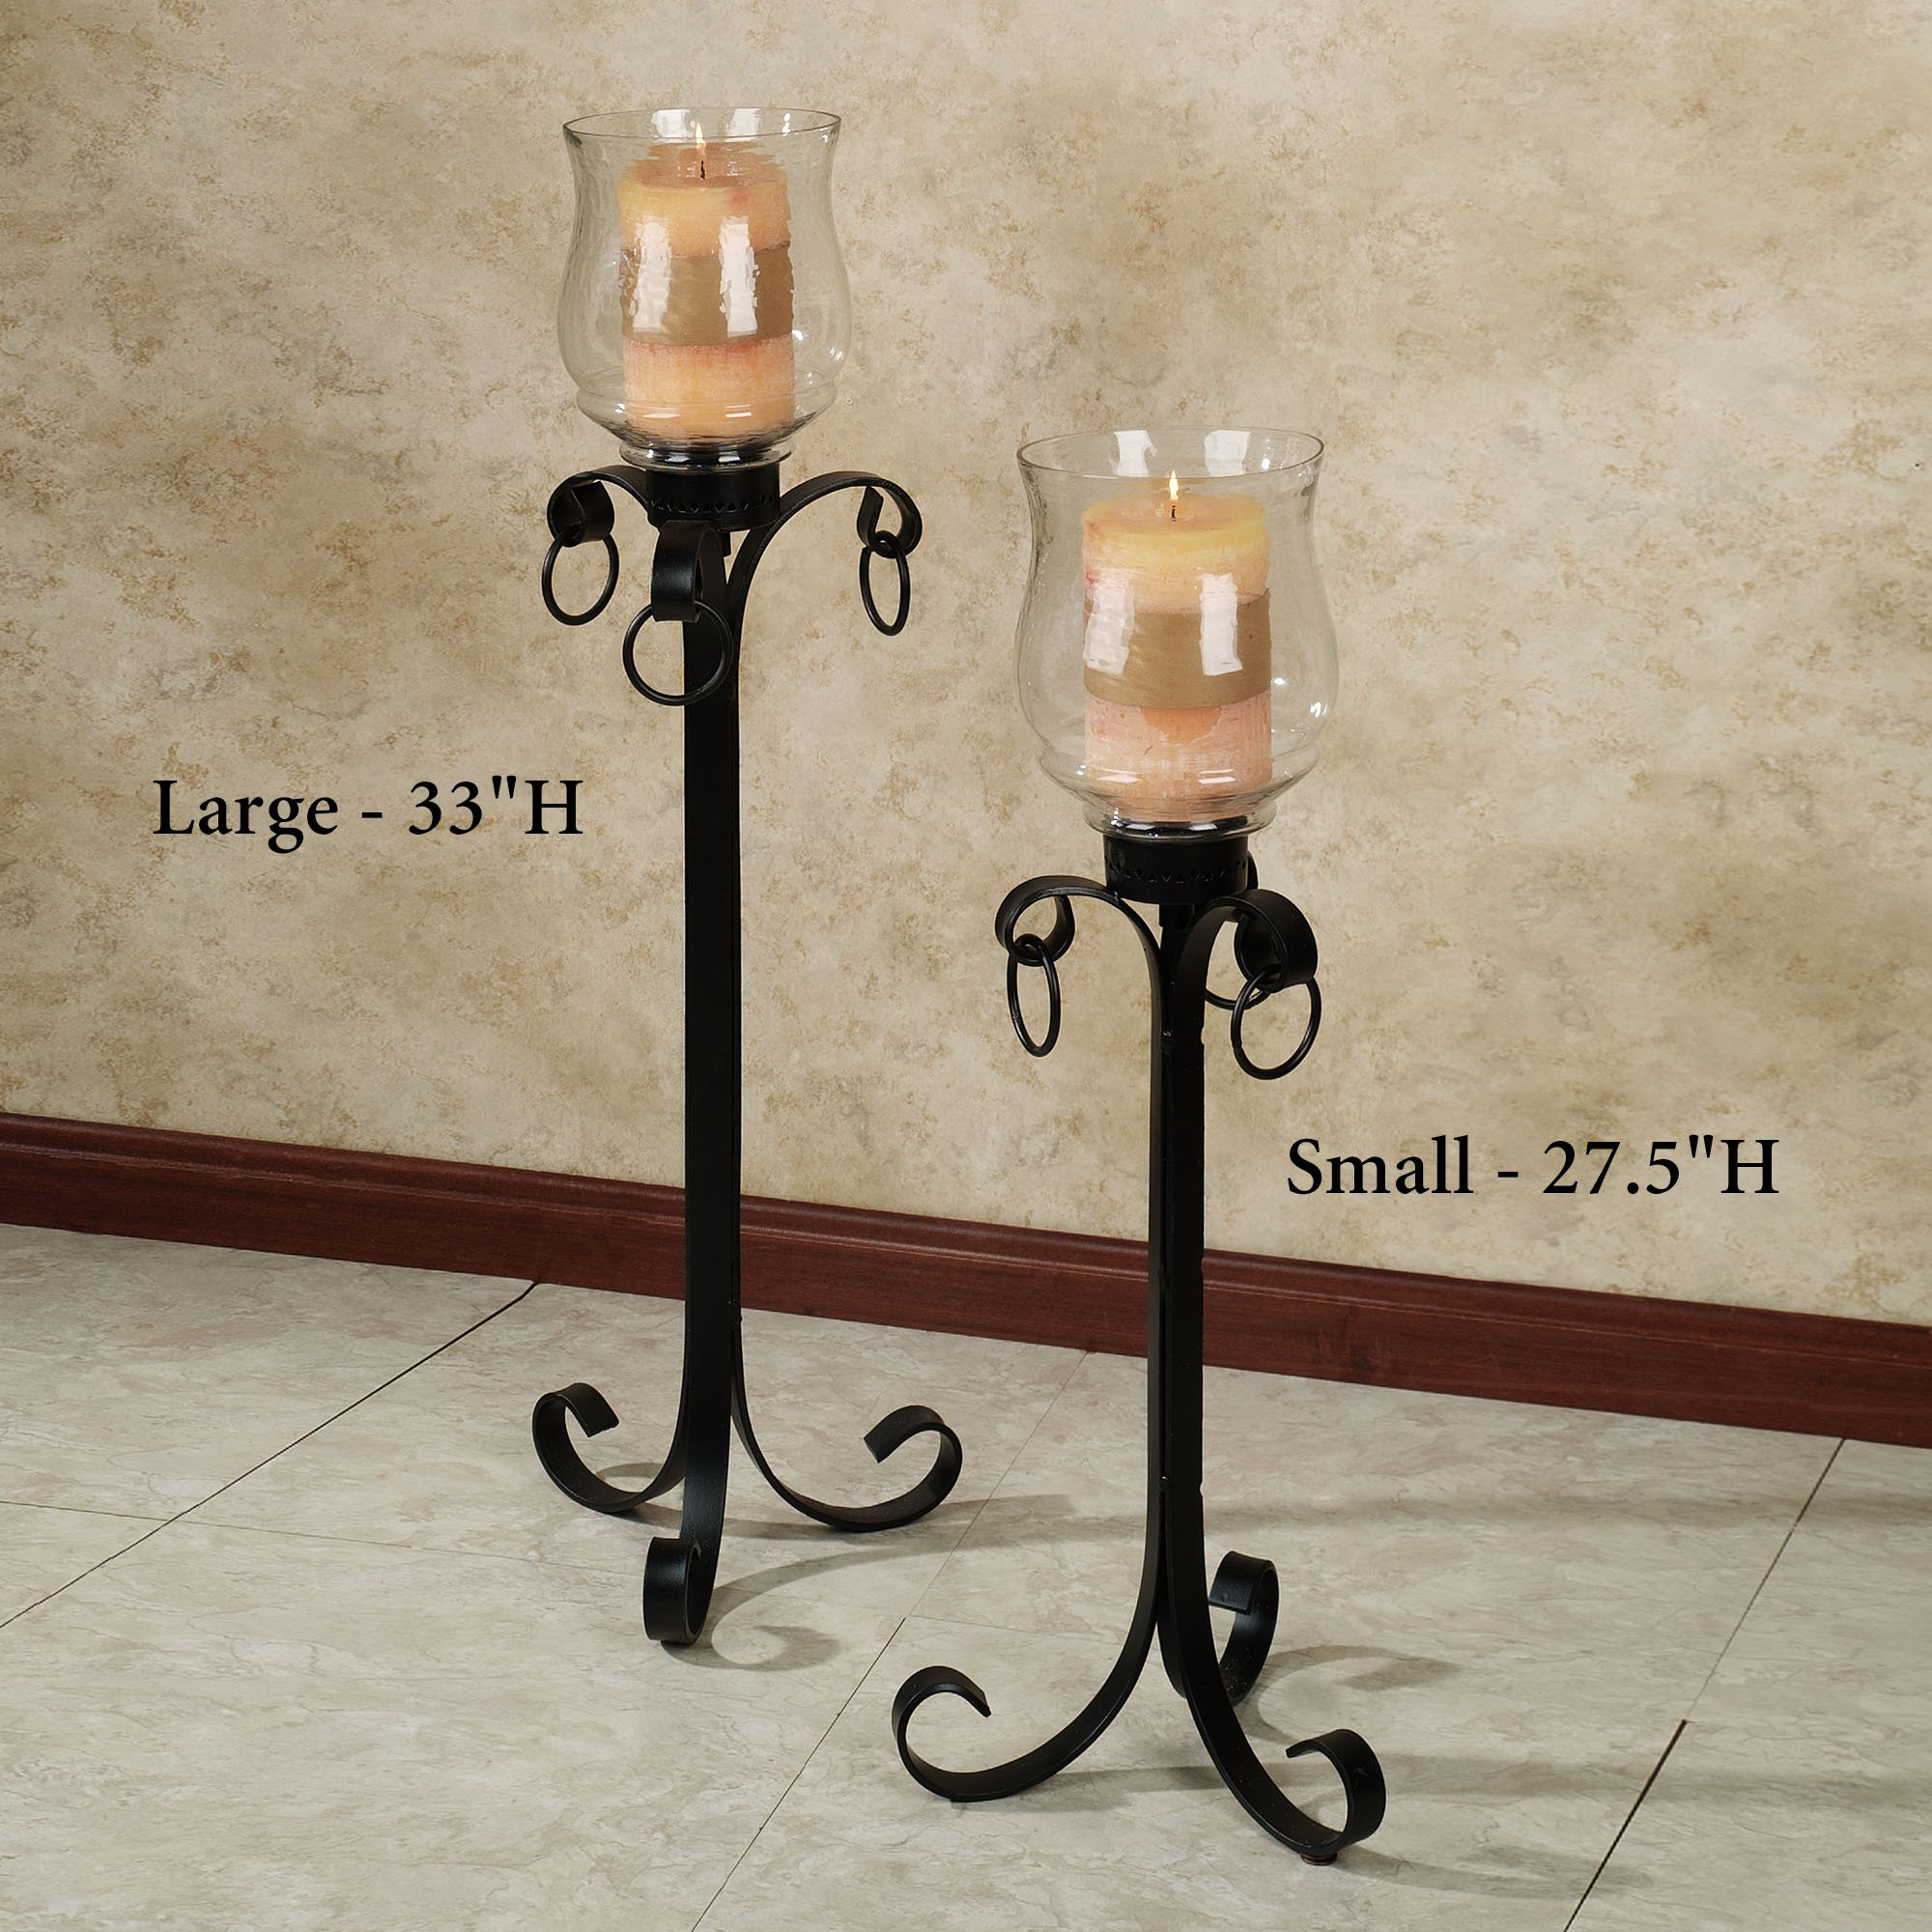 Tall Candle Holders for Fireplace